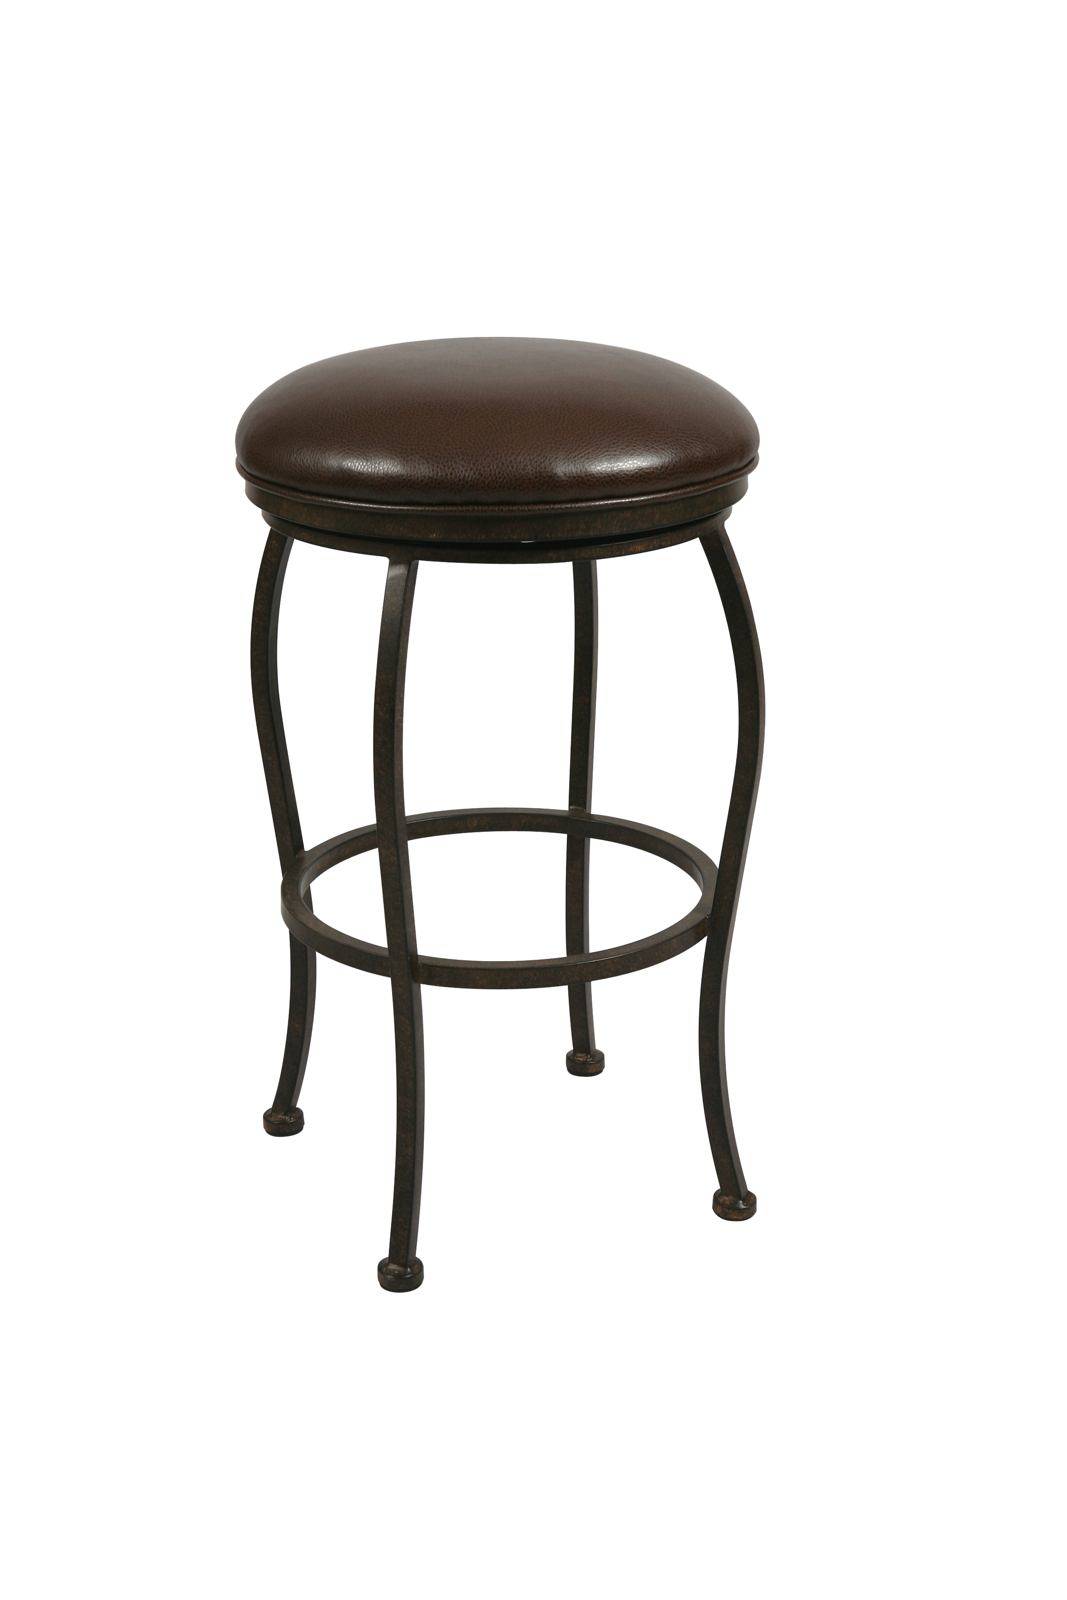 Pastel Furniture Island Falls Backless Barstool in Autumn Rust (Set of 2) IF-215-30-AR-945